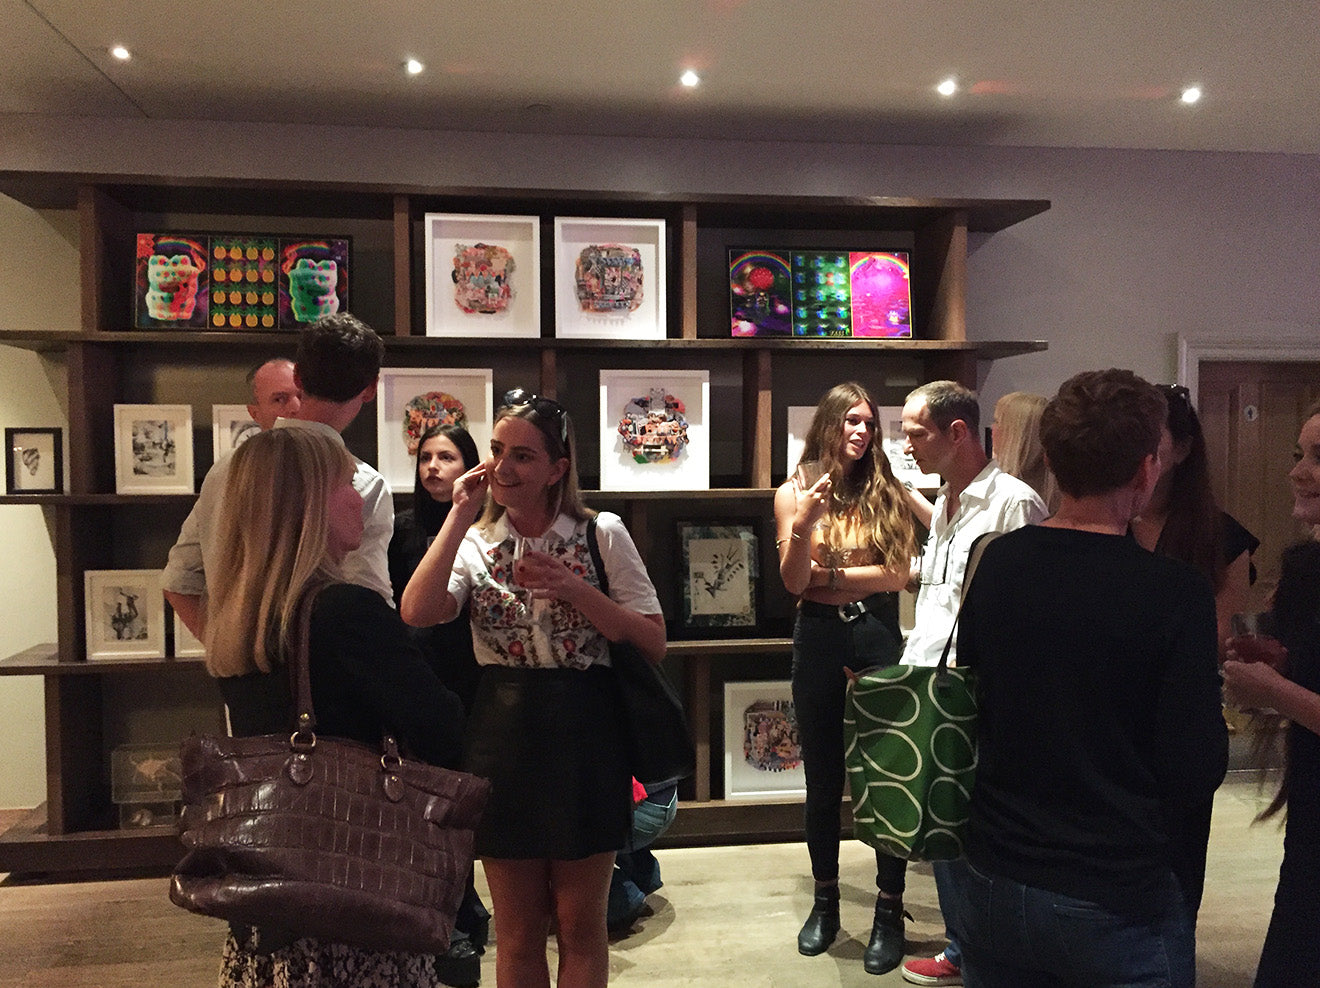 Assemblage at Firmdale guests viewing artwork on display